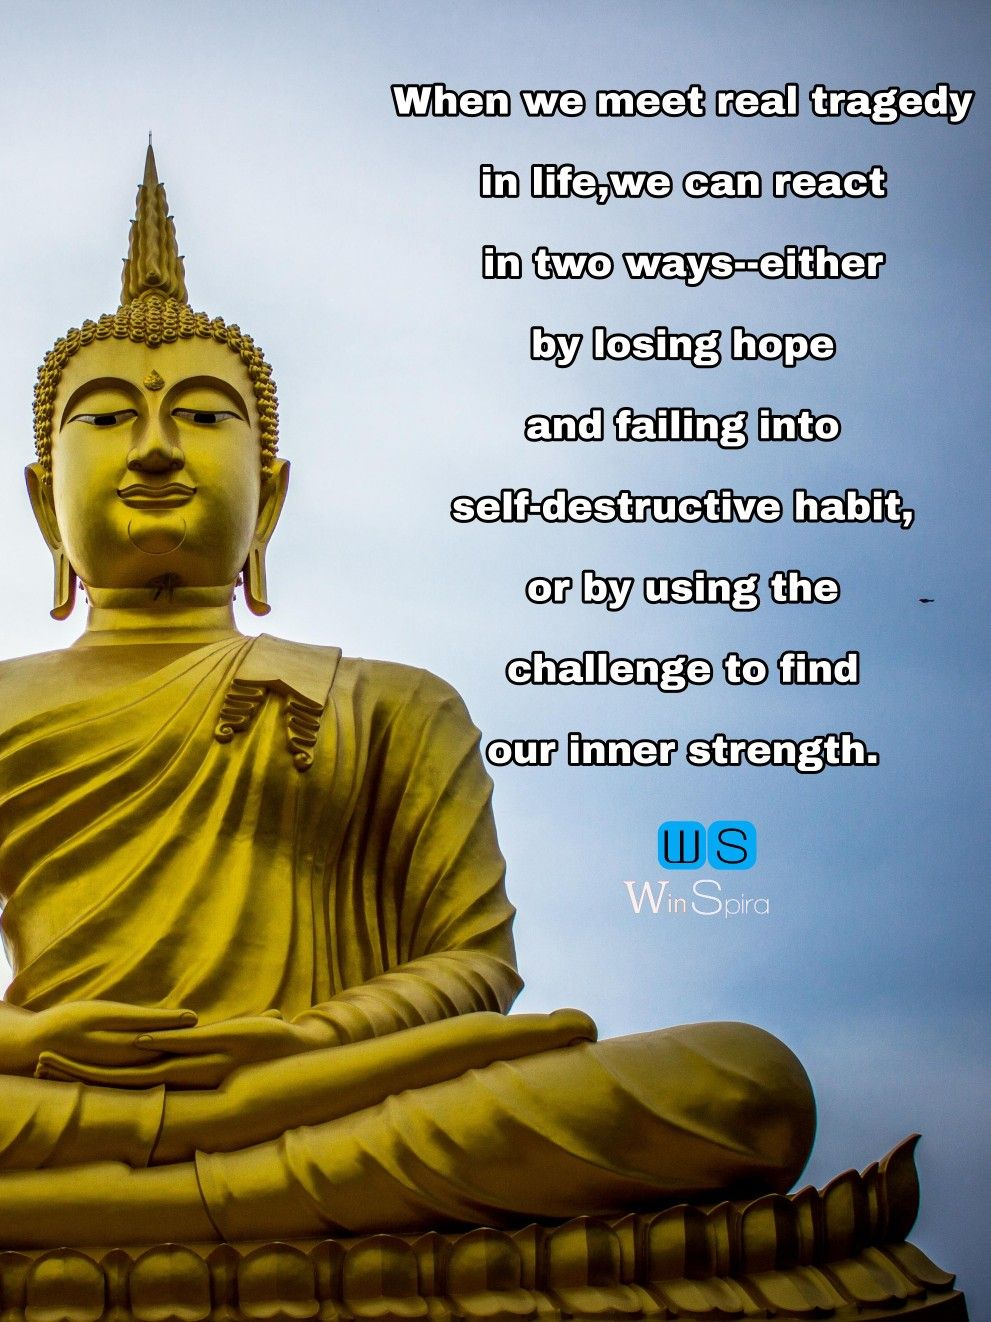 Inner Strength Buddha Quotes : inner, strength, buddha, quotes, Buddha, #quotes, #Spiritualityquotes, #Spirit, #Peacequotes, #enlight, Spirit, Quotes,, Spiritual, Peace, Quotes